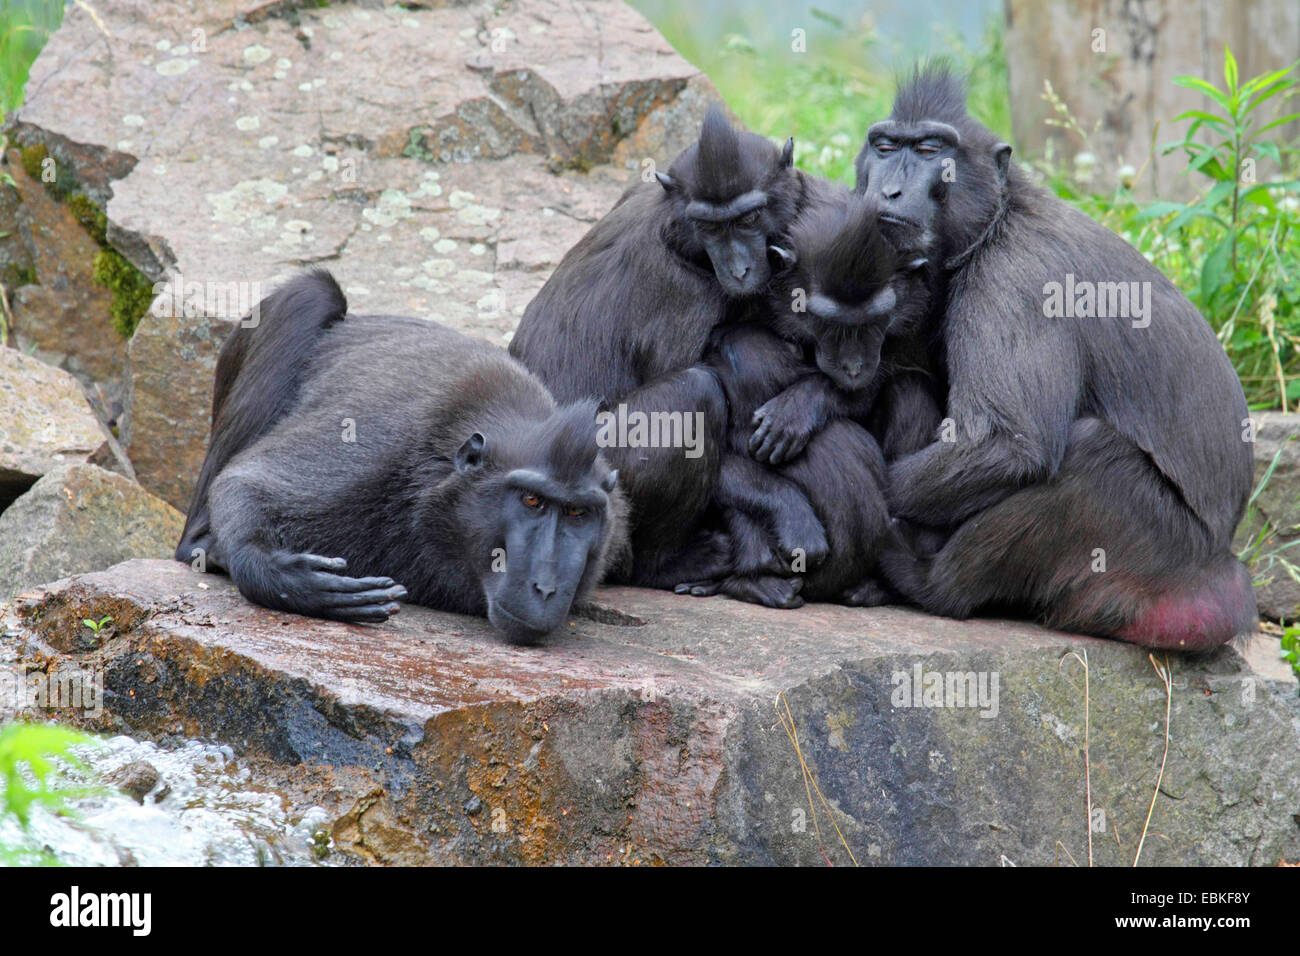 Celebes ape, Celebes black ape (Macaca nigra), group with physical contact - Stock Image